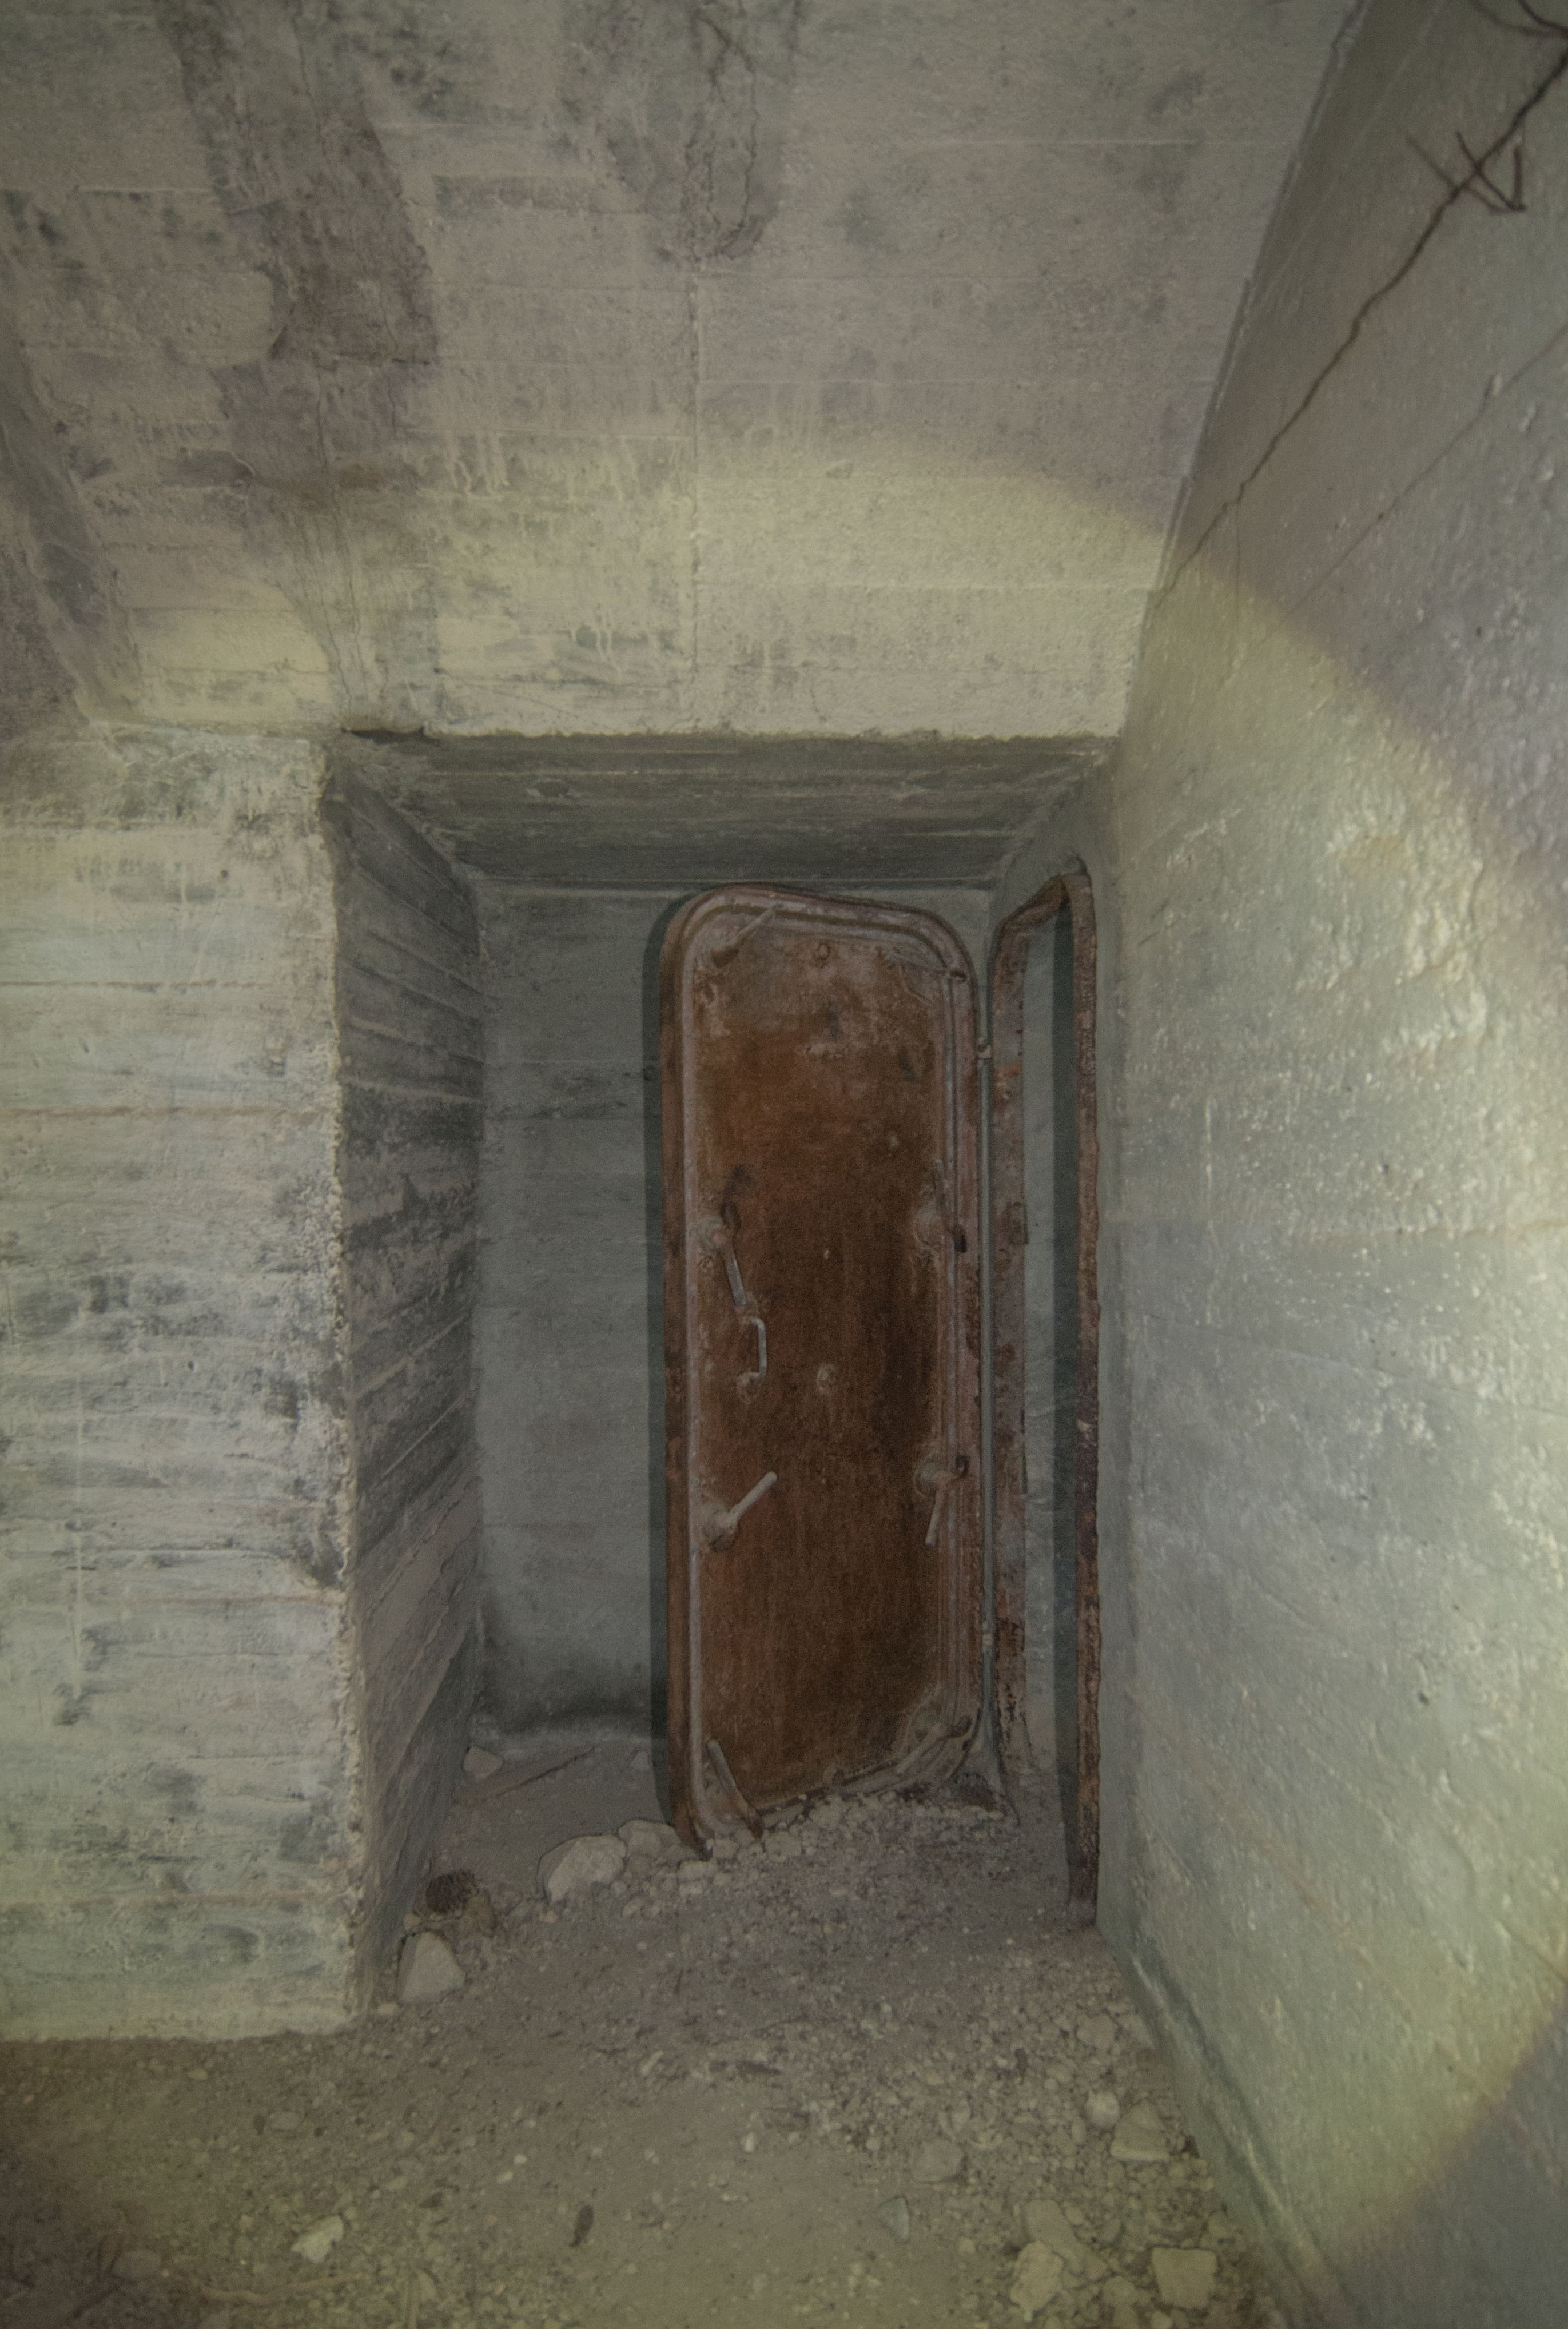 According to Konstantinos Kirimis, this is the only German steel door in any of the WW2 shelters explored in Attica, Greece.